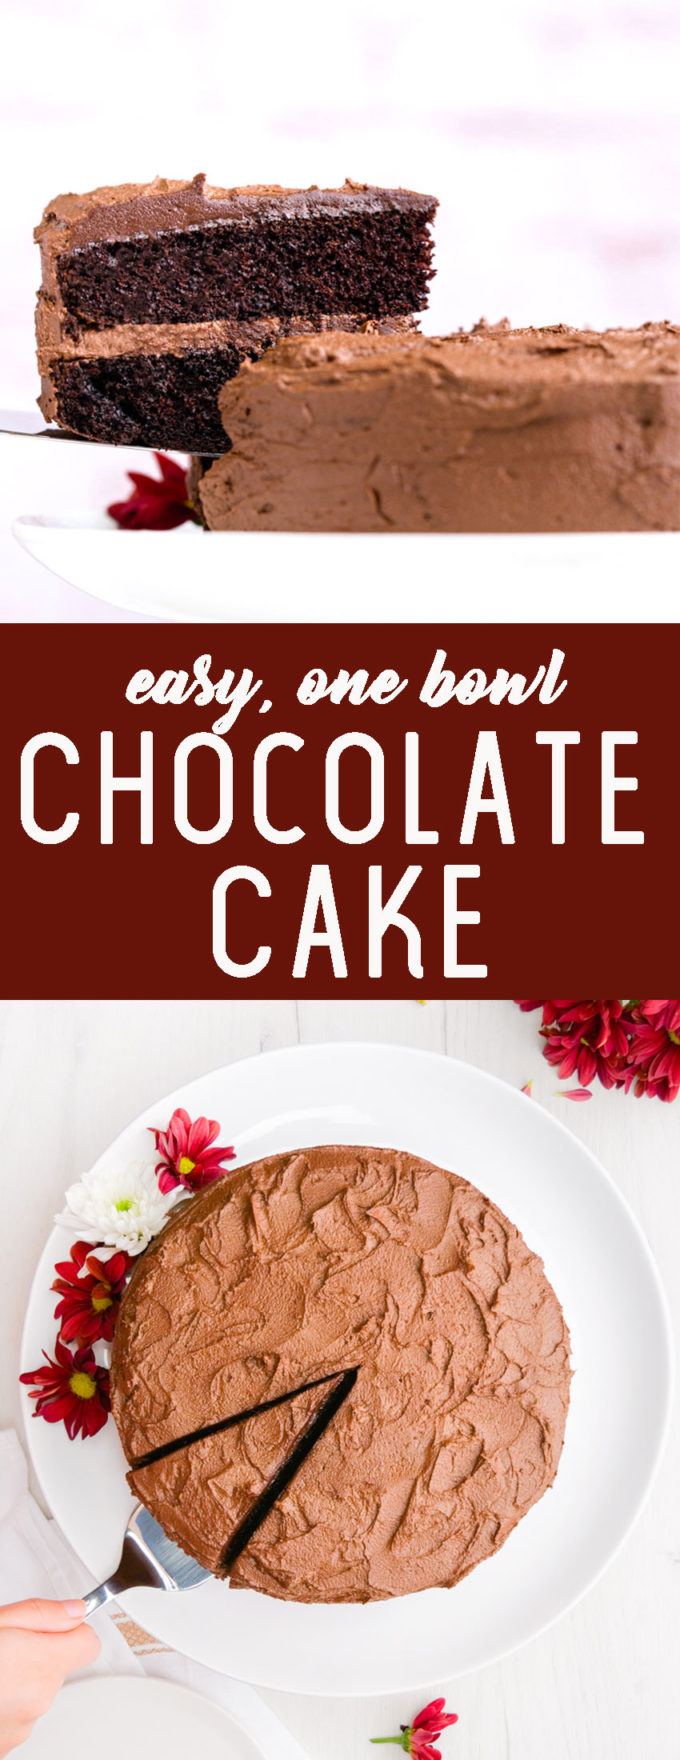 Easy, One Bowl Chocolate cake that is two layers of cake with a buttercream icing. This cake actually tastes like chocolate and is so moist and delicious.